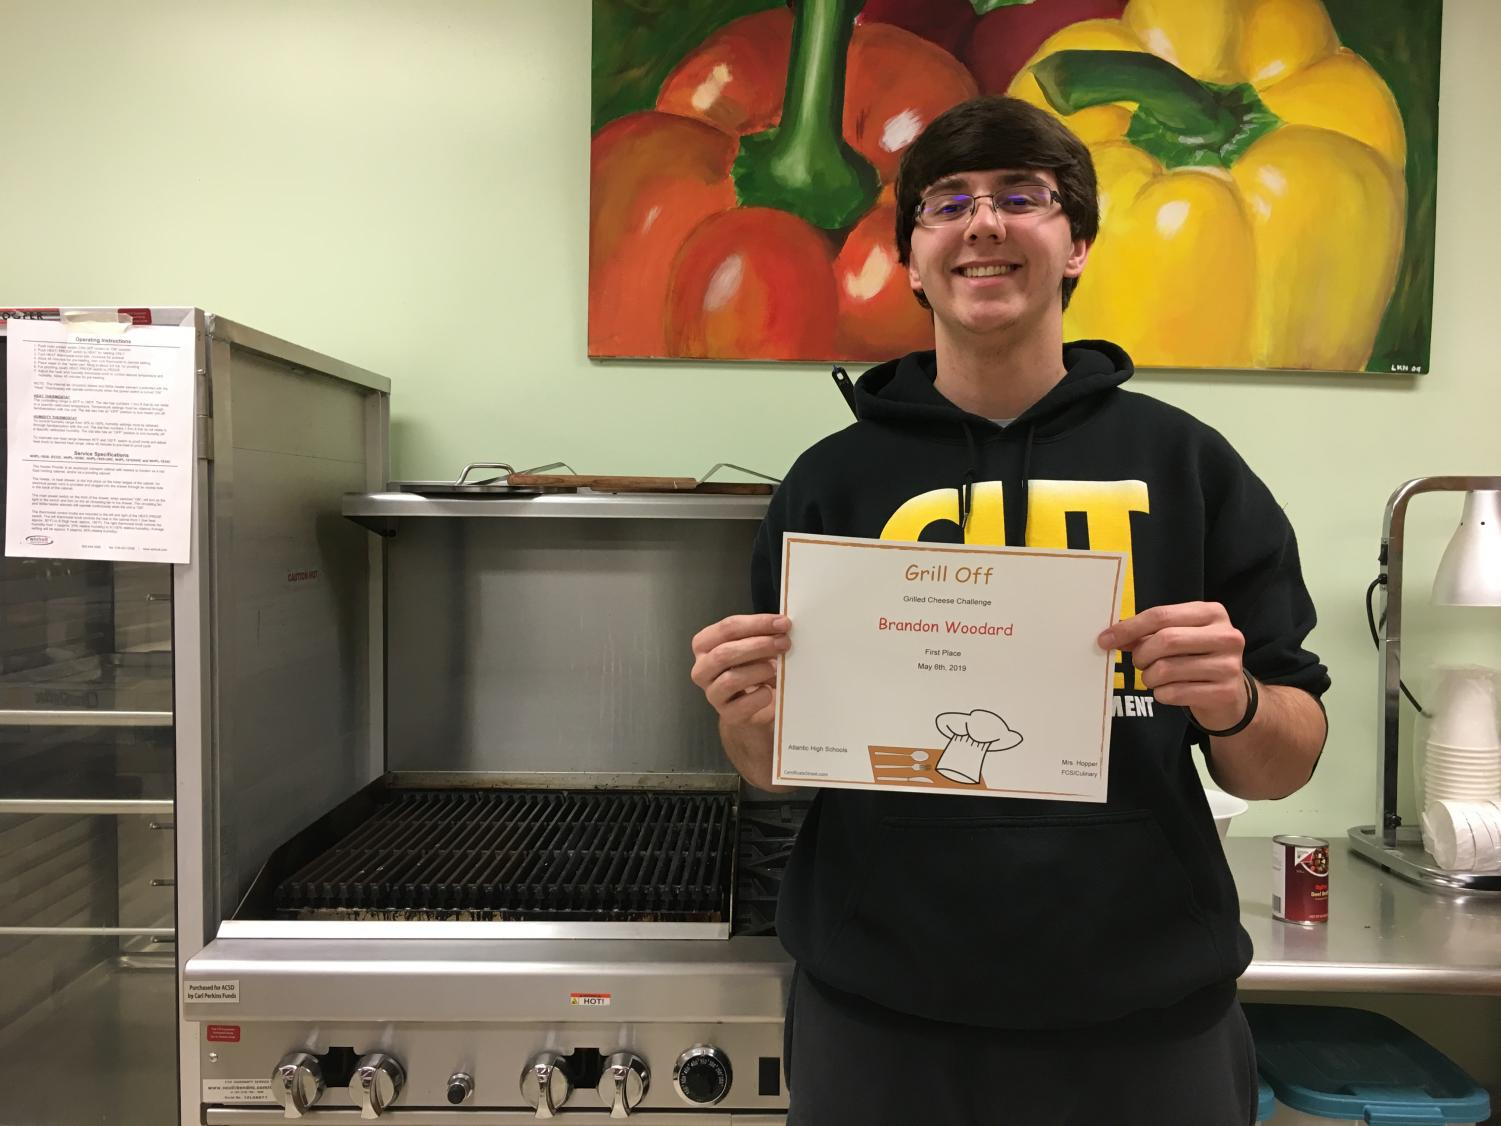 COOKIN' UP THE COMPETITION - Senior Brandon Woodard poses with a certificate to signify his win in the grilled cheese contest. Woodard has taken many culinary arts courses throughout high school and has won two official contests.